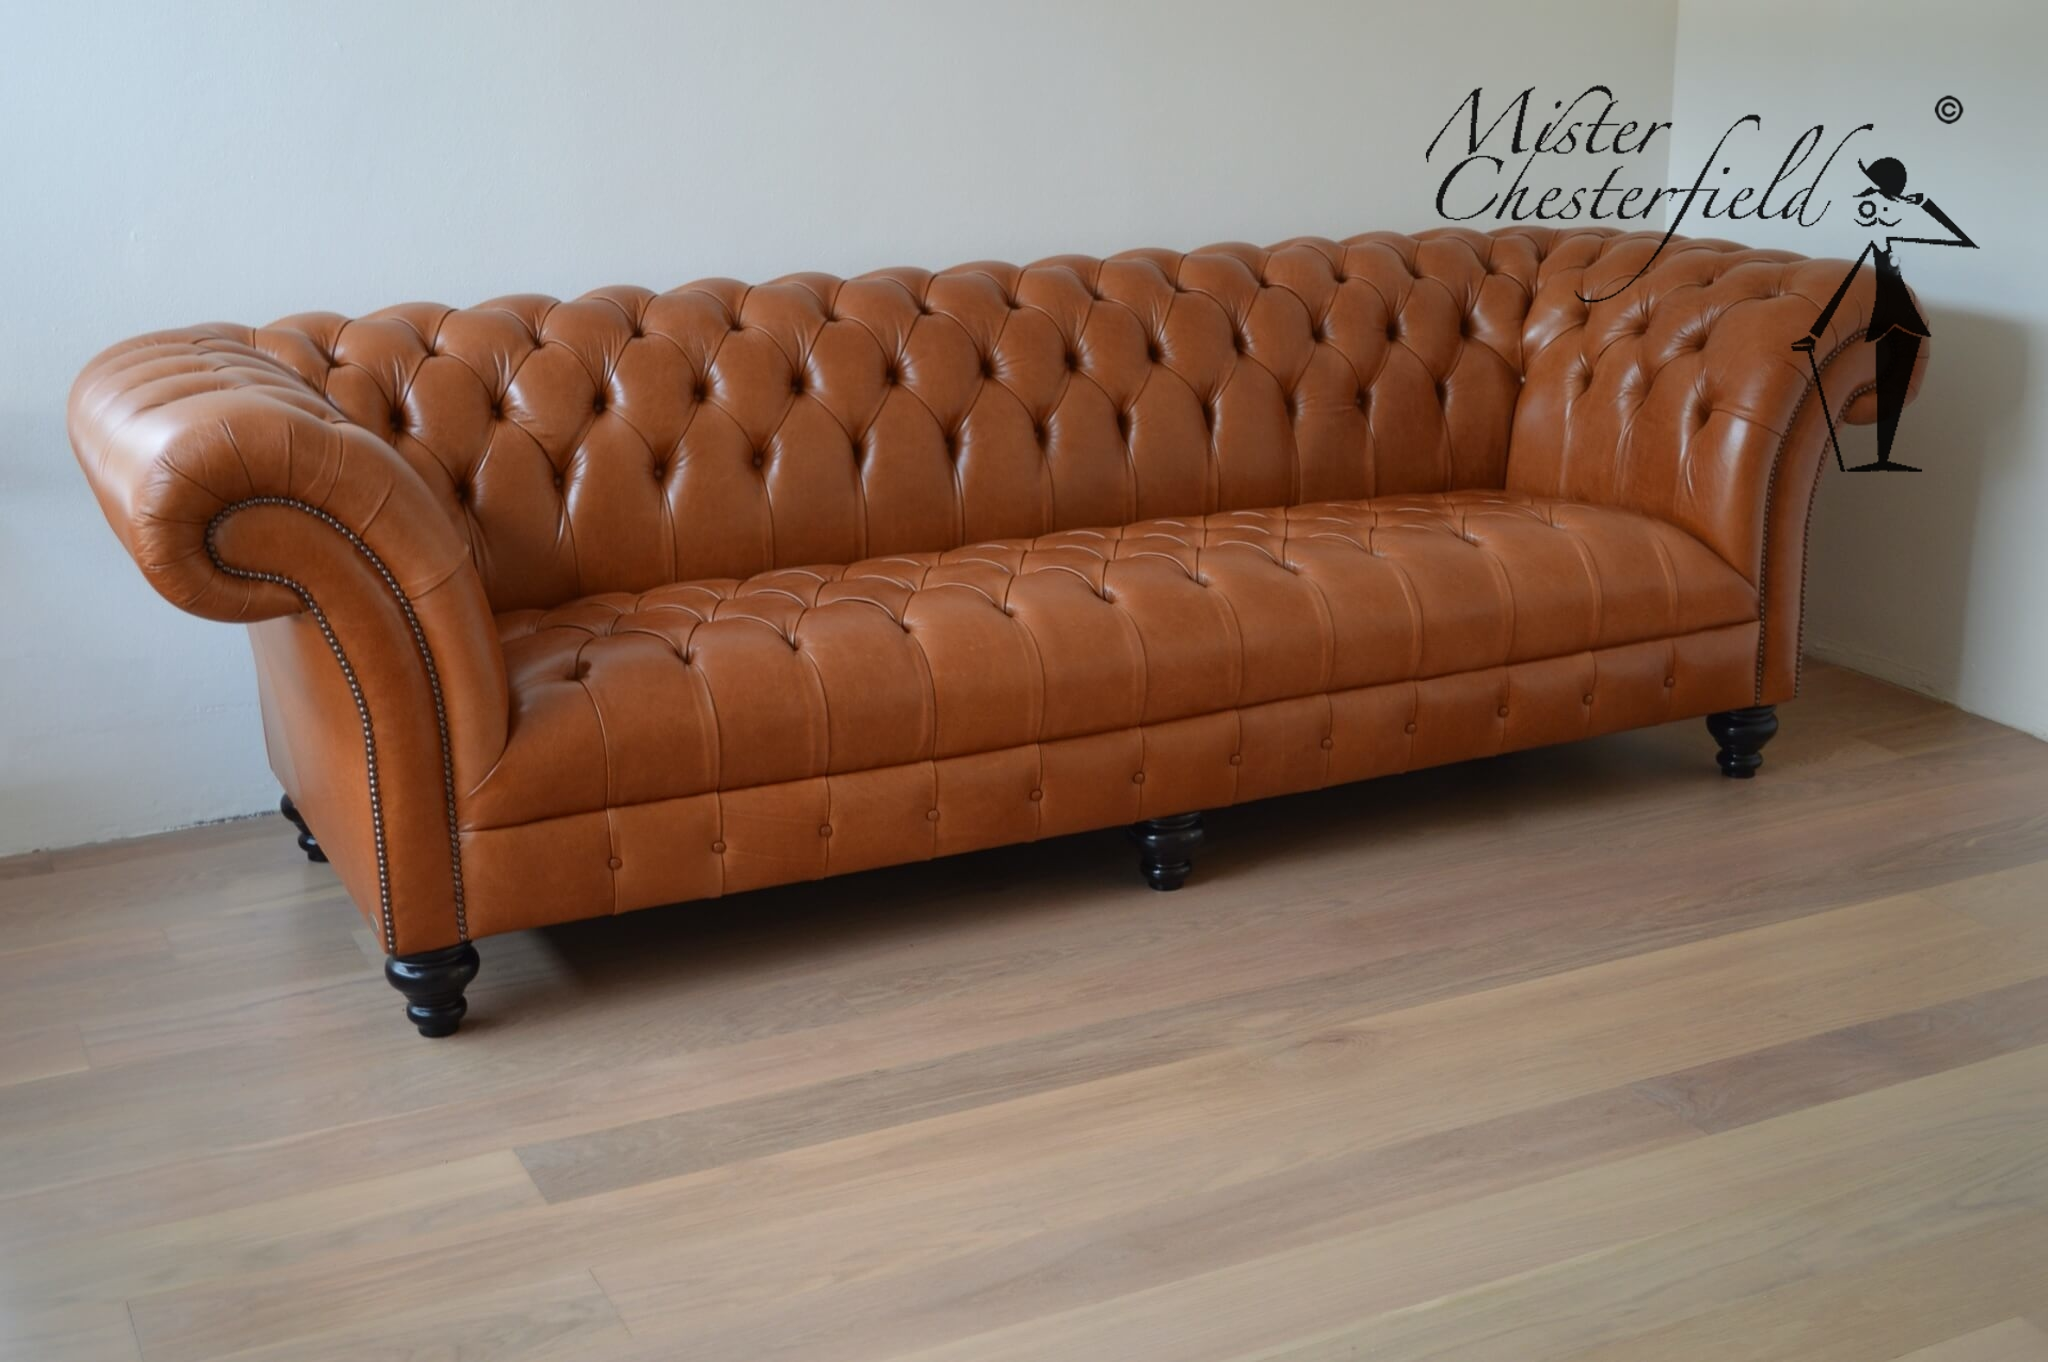 chesterfield-bank-camel-caramel-sadle-bruciato